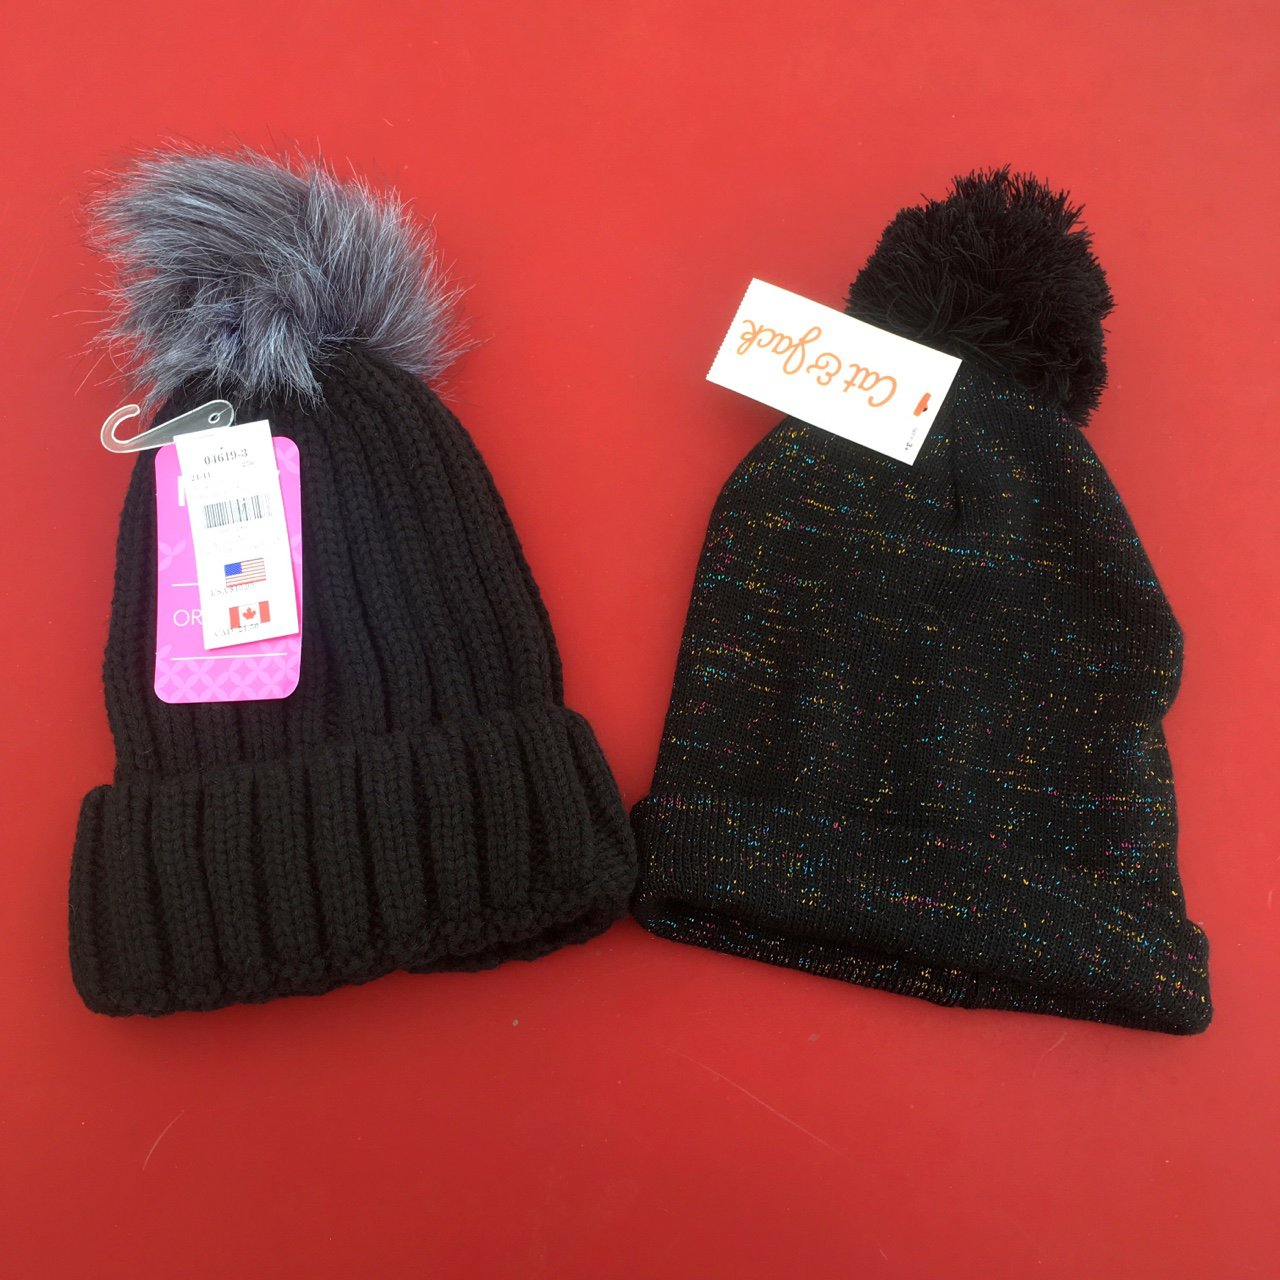 Two awesome beanies New With Tags!!!  20 shipped for both. - Depop b212cf7d6